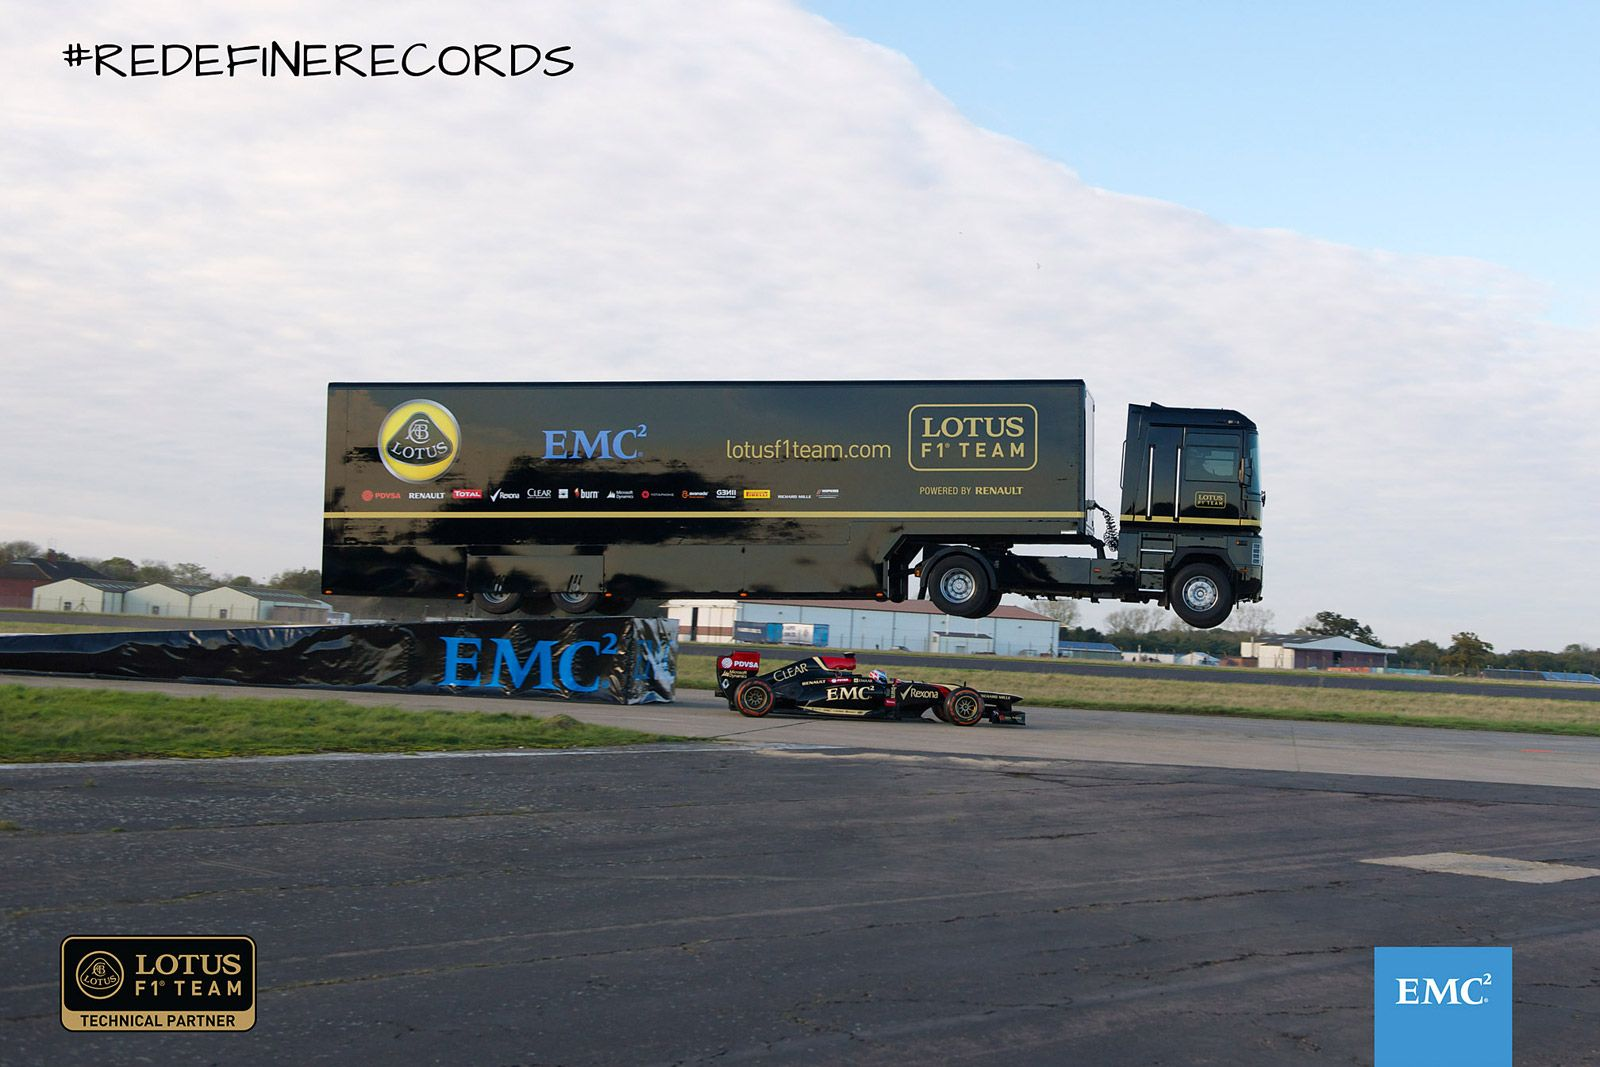 Video: Renault truck takes world record jump over Lotus Formula One car